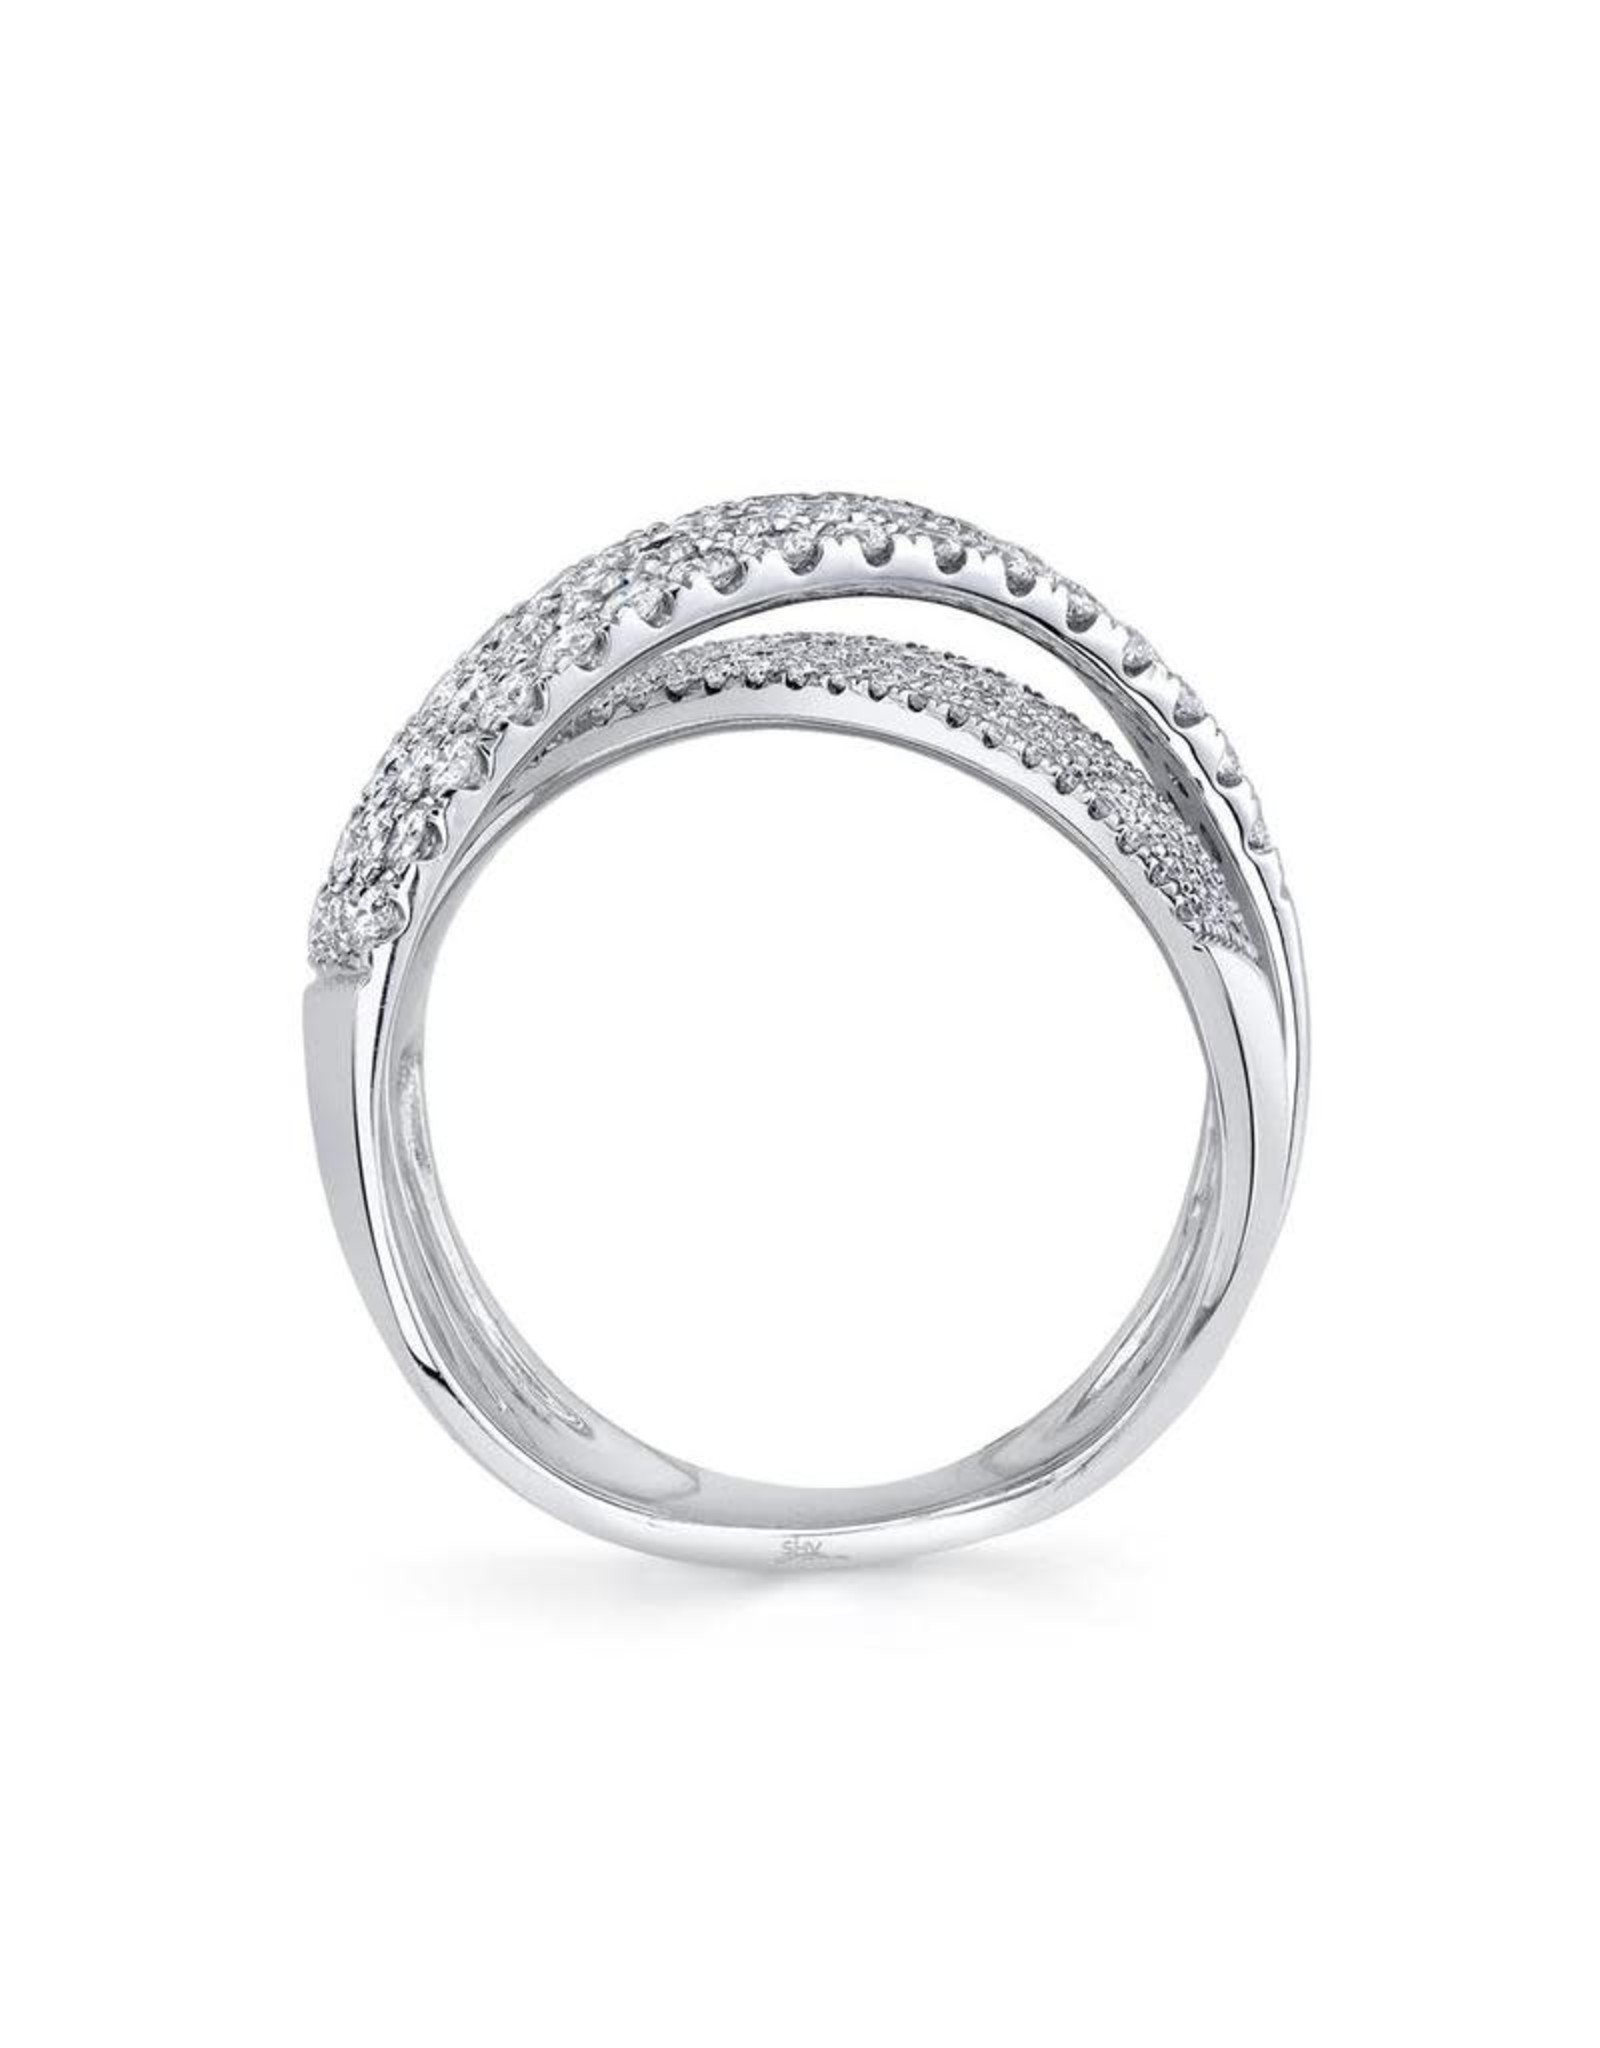 14K White Gold Diamond Pave Crossover Ring, D: 1.16ct